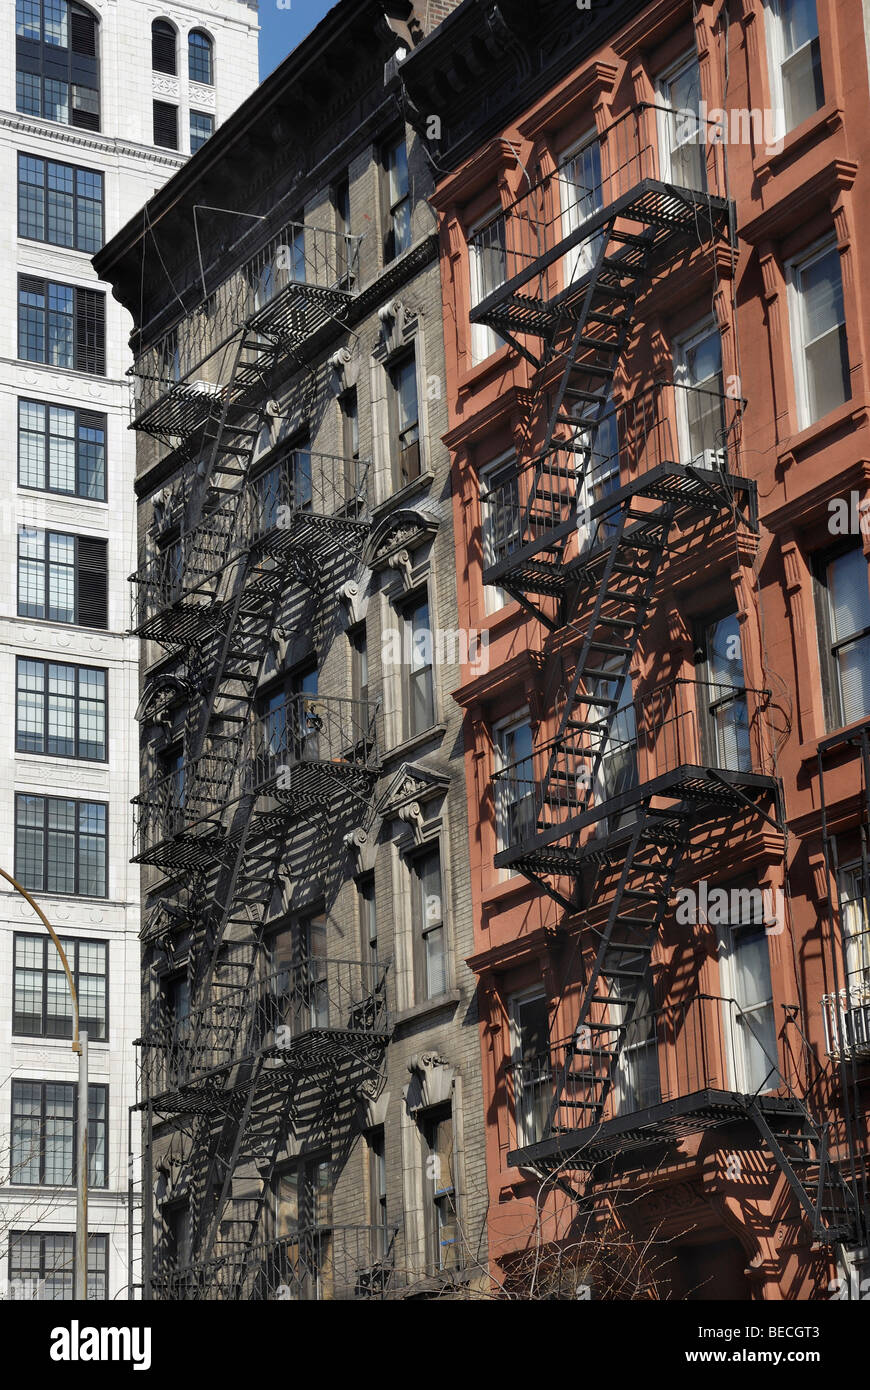 Old brick building with a fire escape ladder, New York, USA - Stock Image